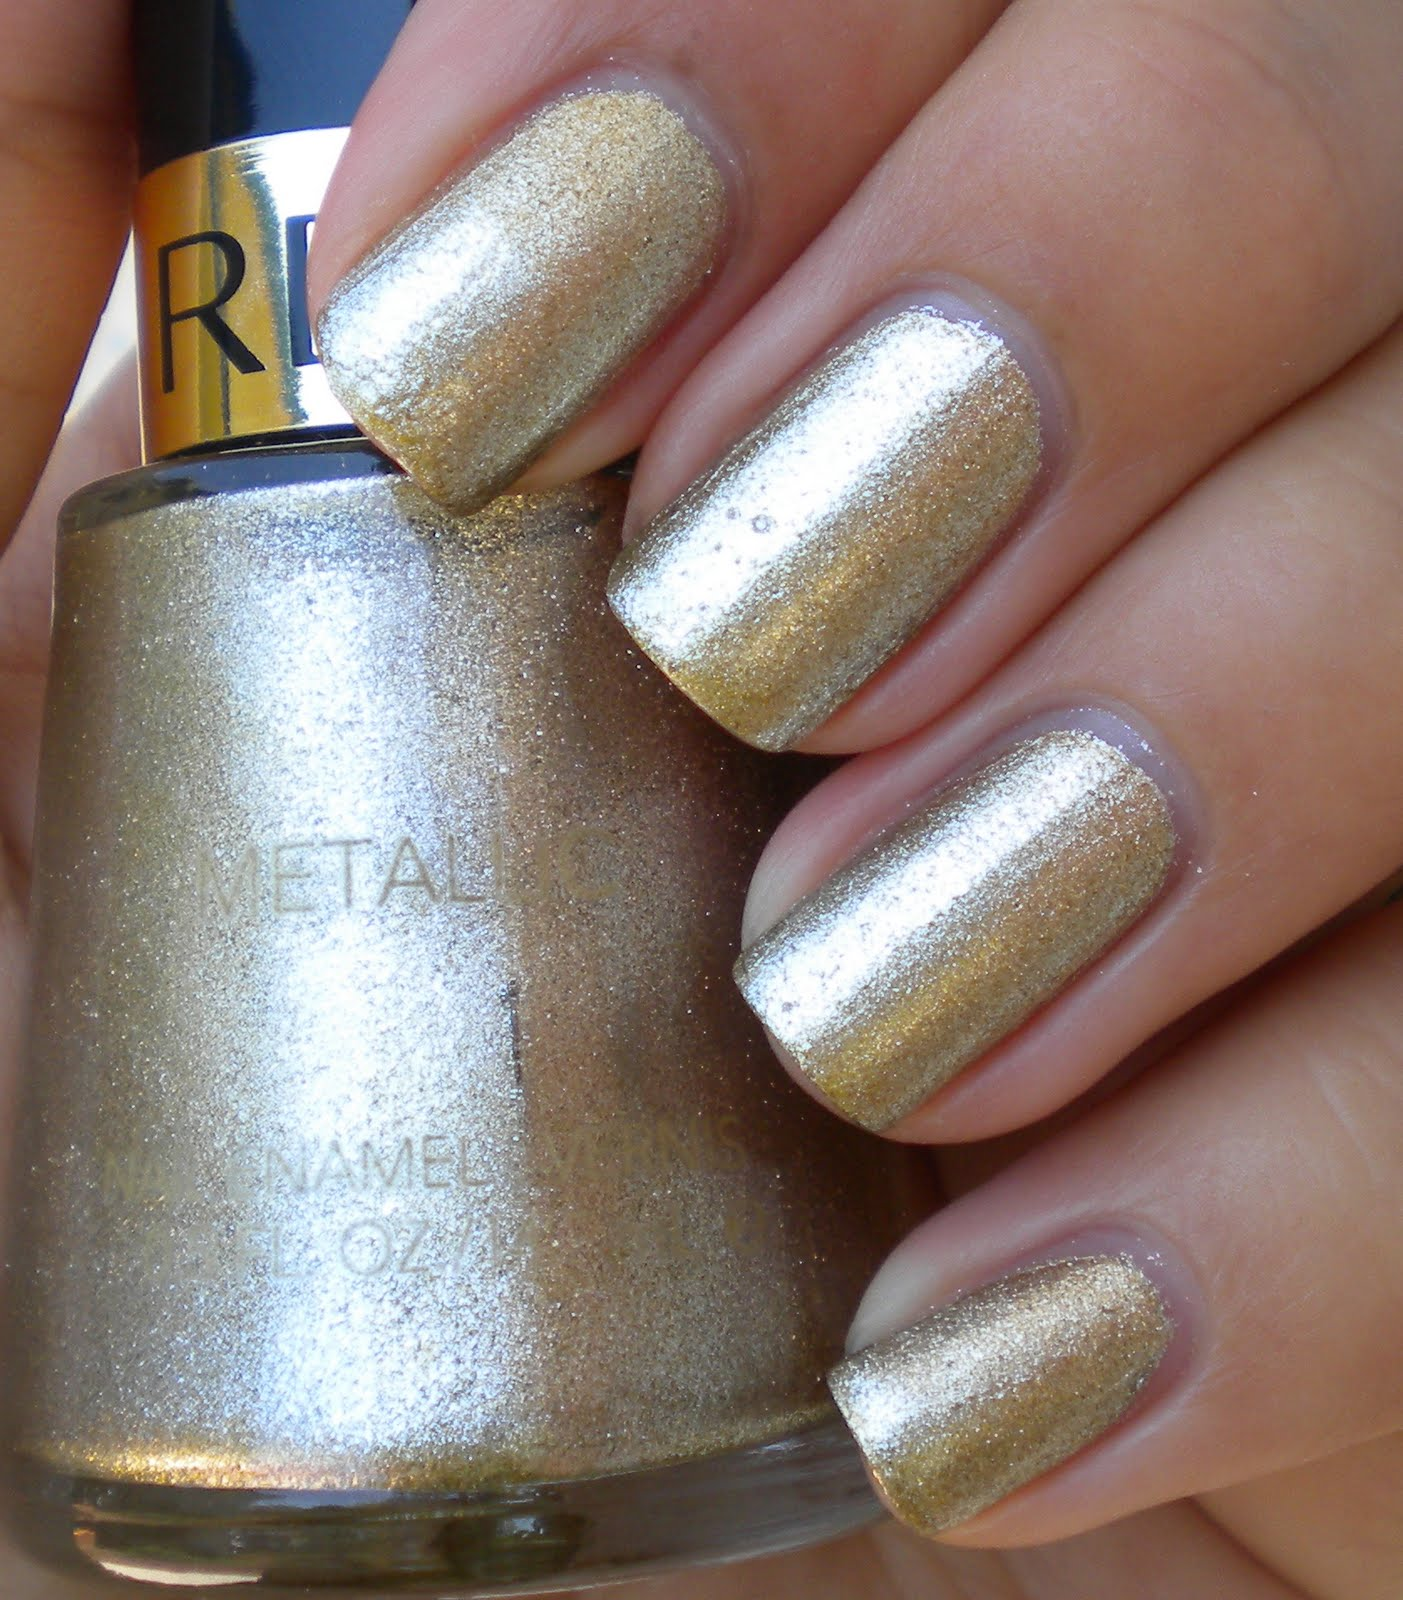 Metallic Gold Nail Polish: Smile For The Little Things: Revlon Gold Coin